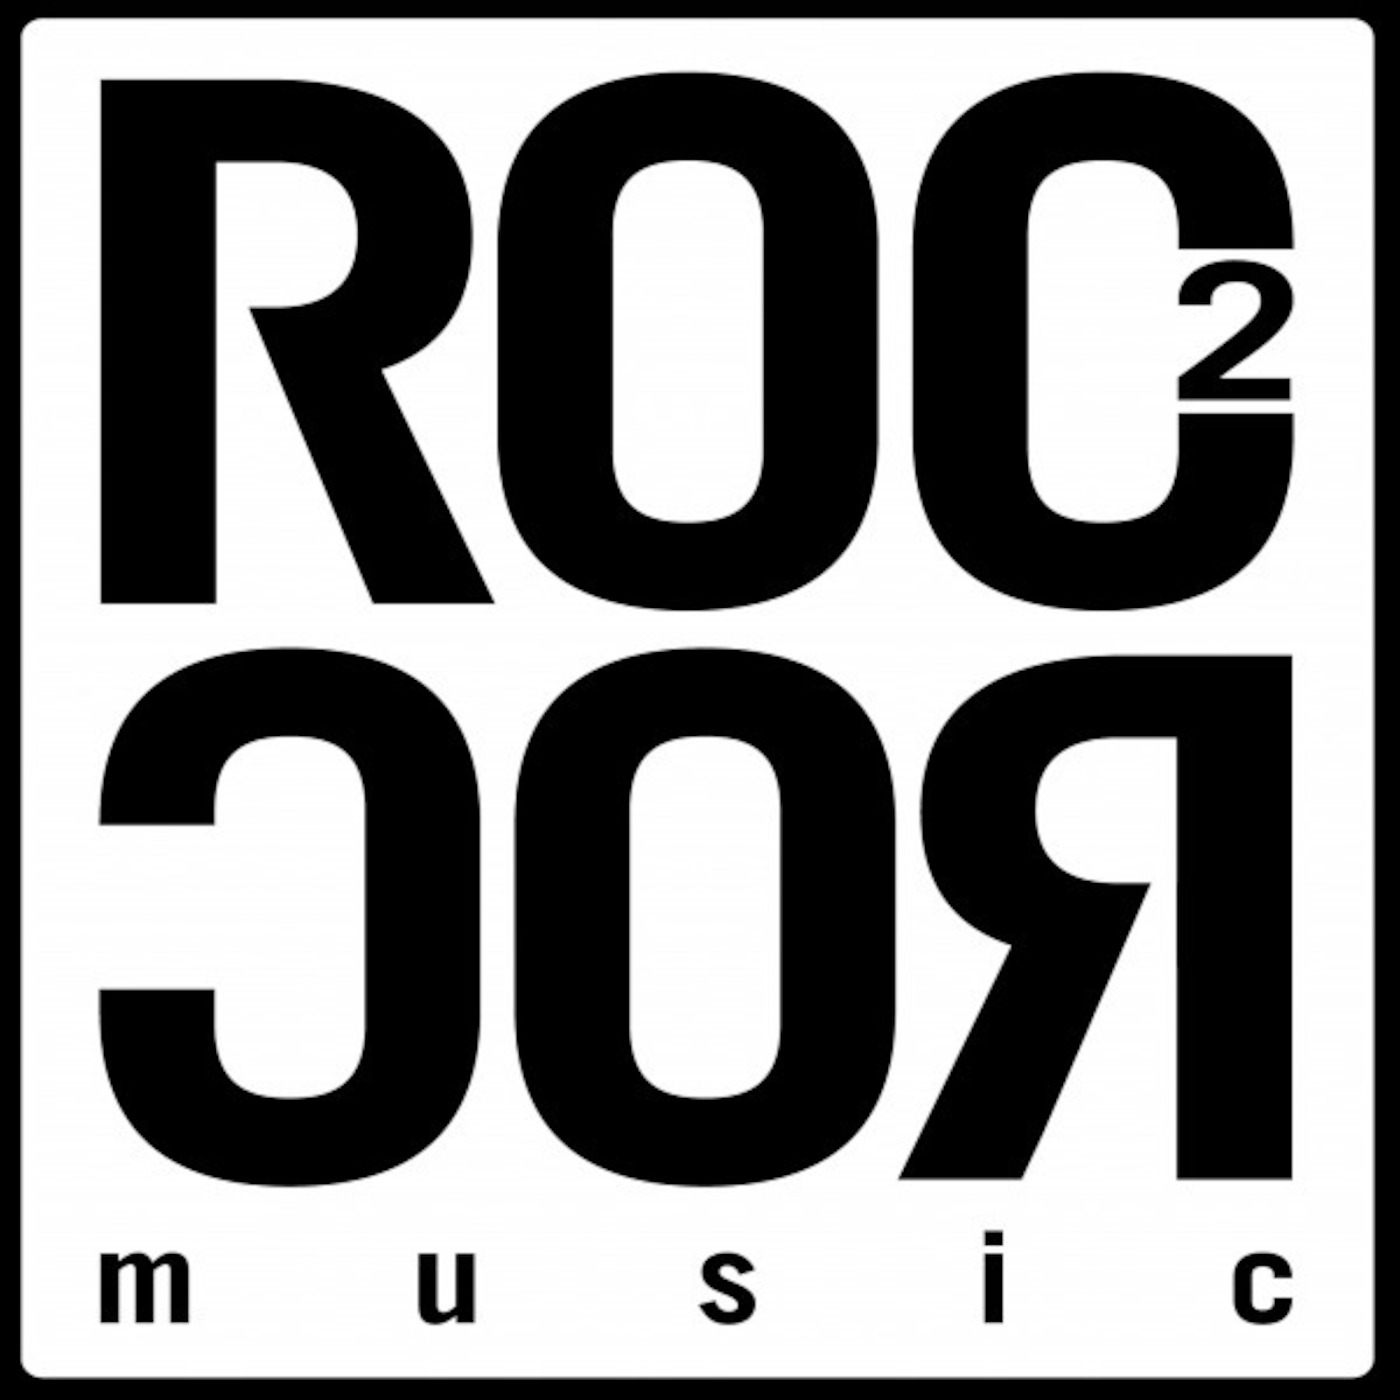 ROC2ROC MUSIC GOSPEL HOUSE PODCAST